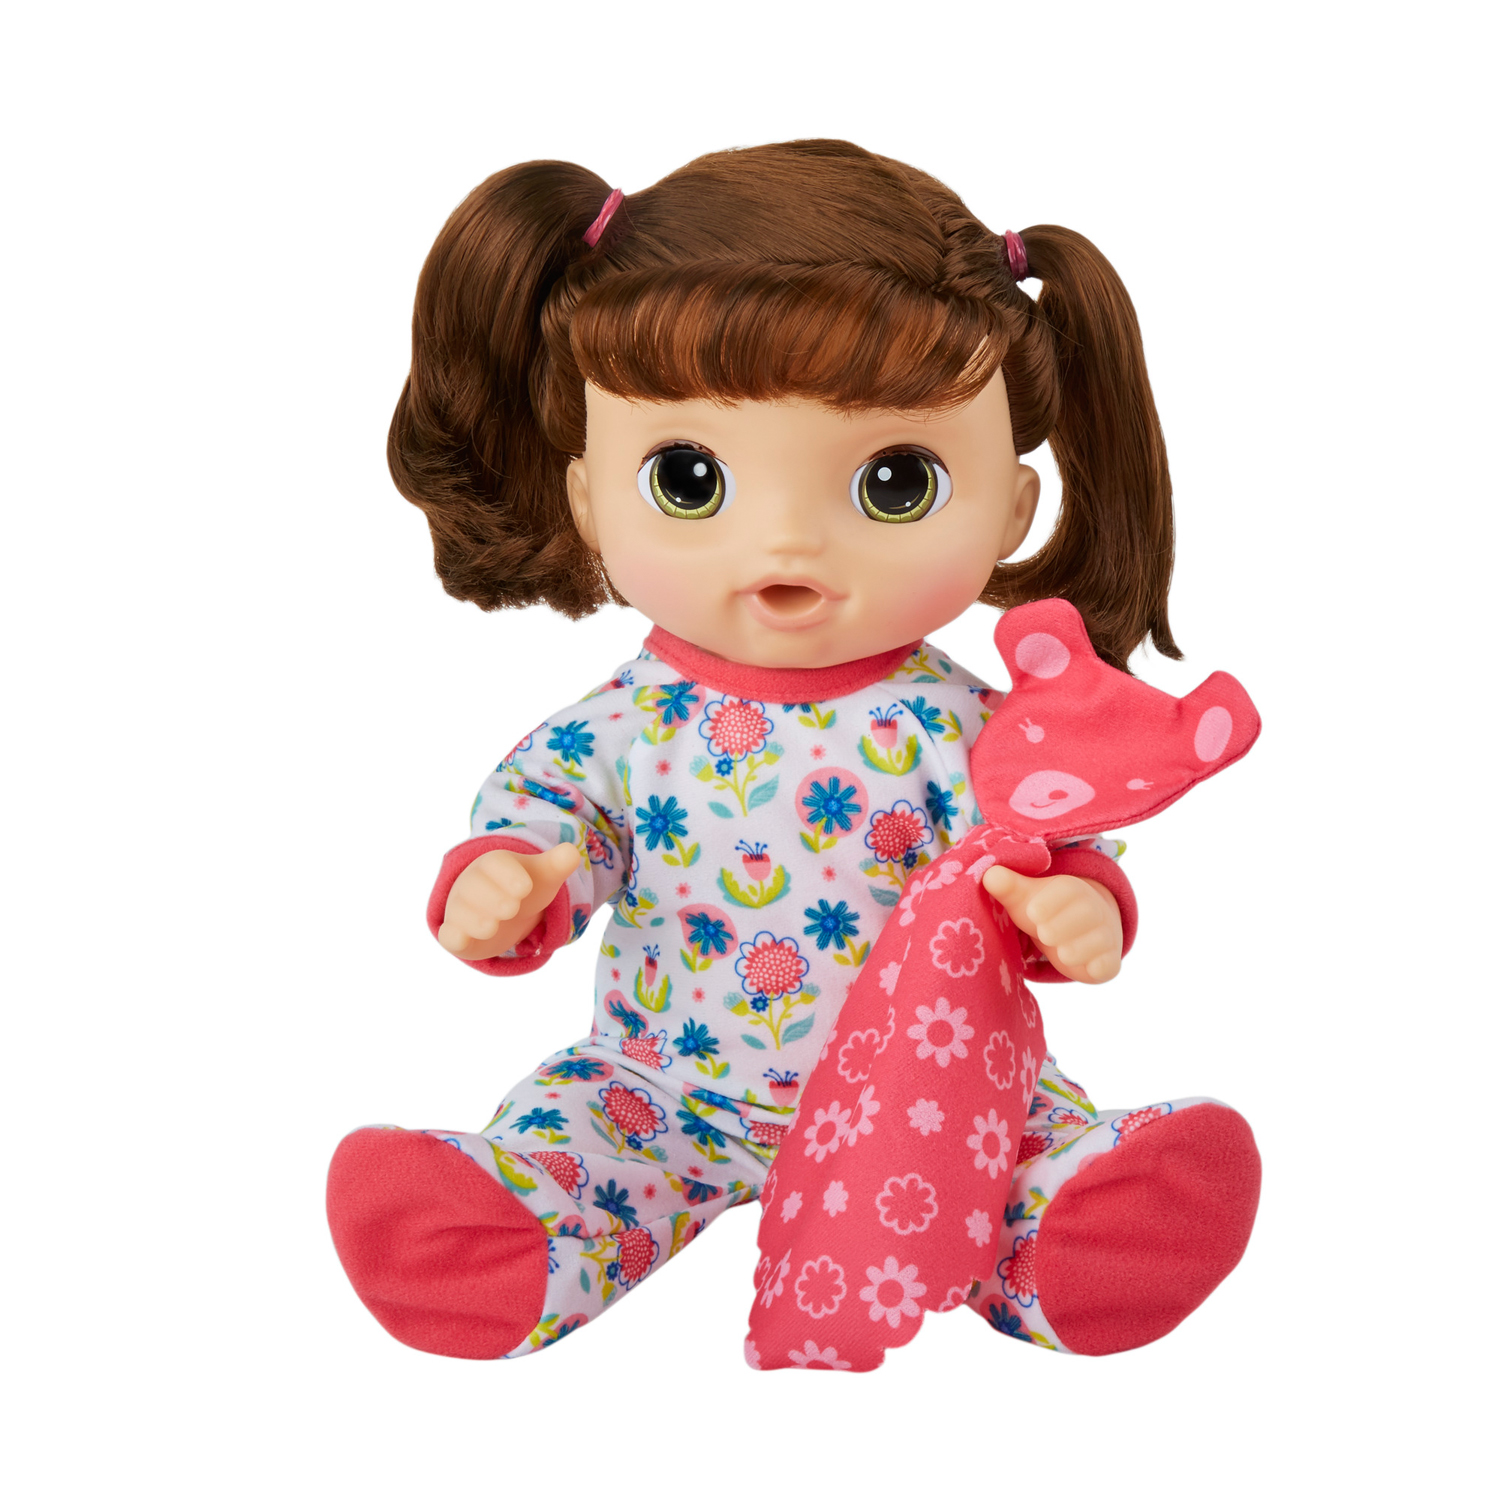 Baby Alive Sweet Tears Baby Exclusive Value Pack - Brunette Hair